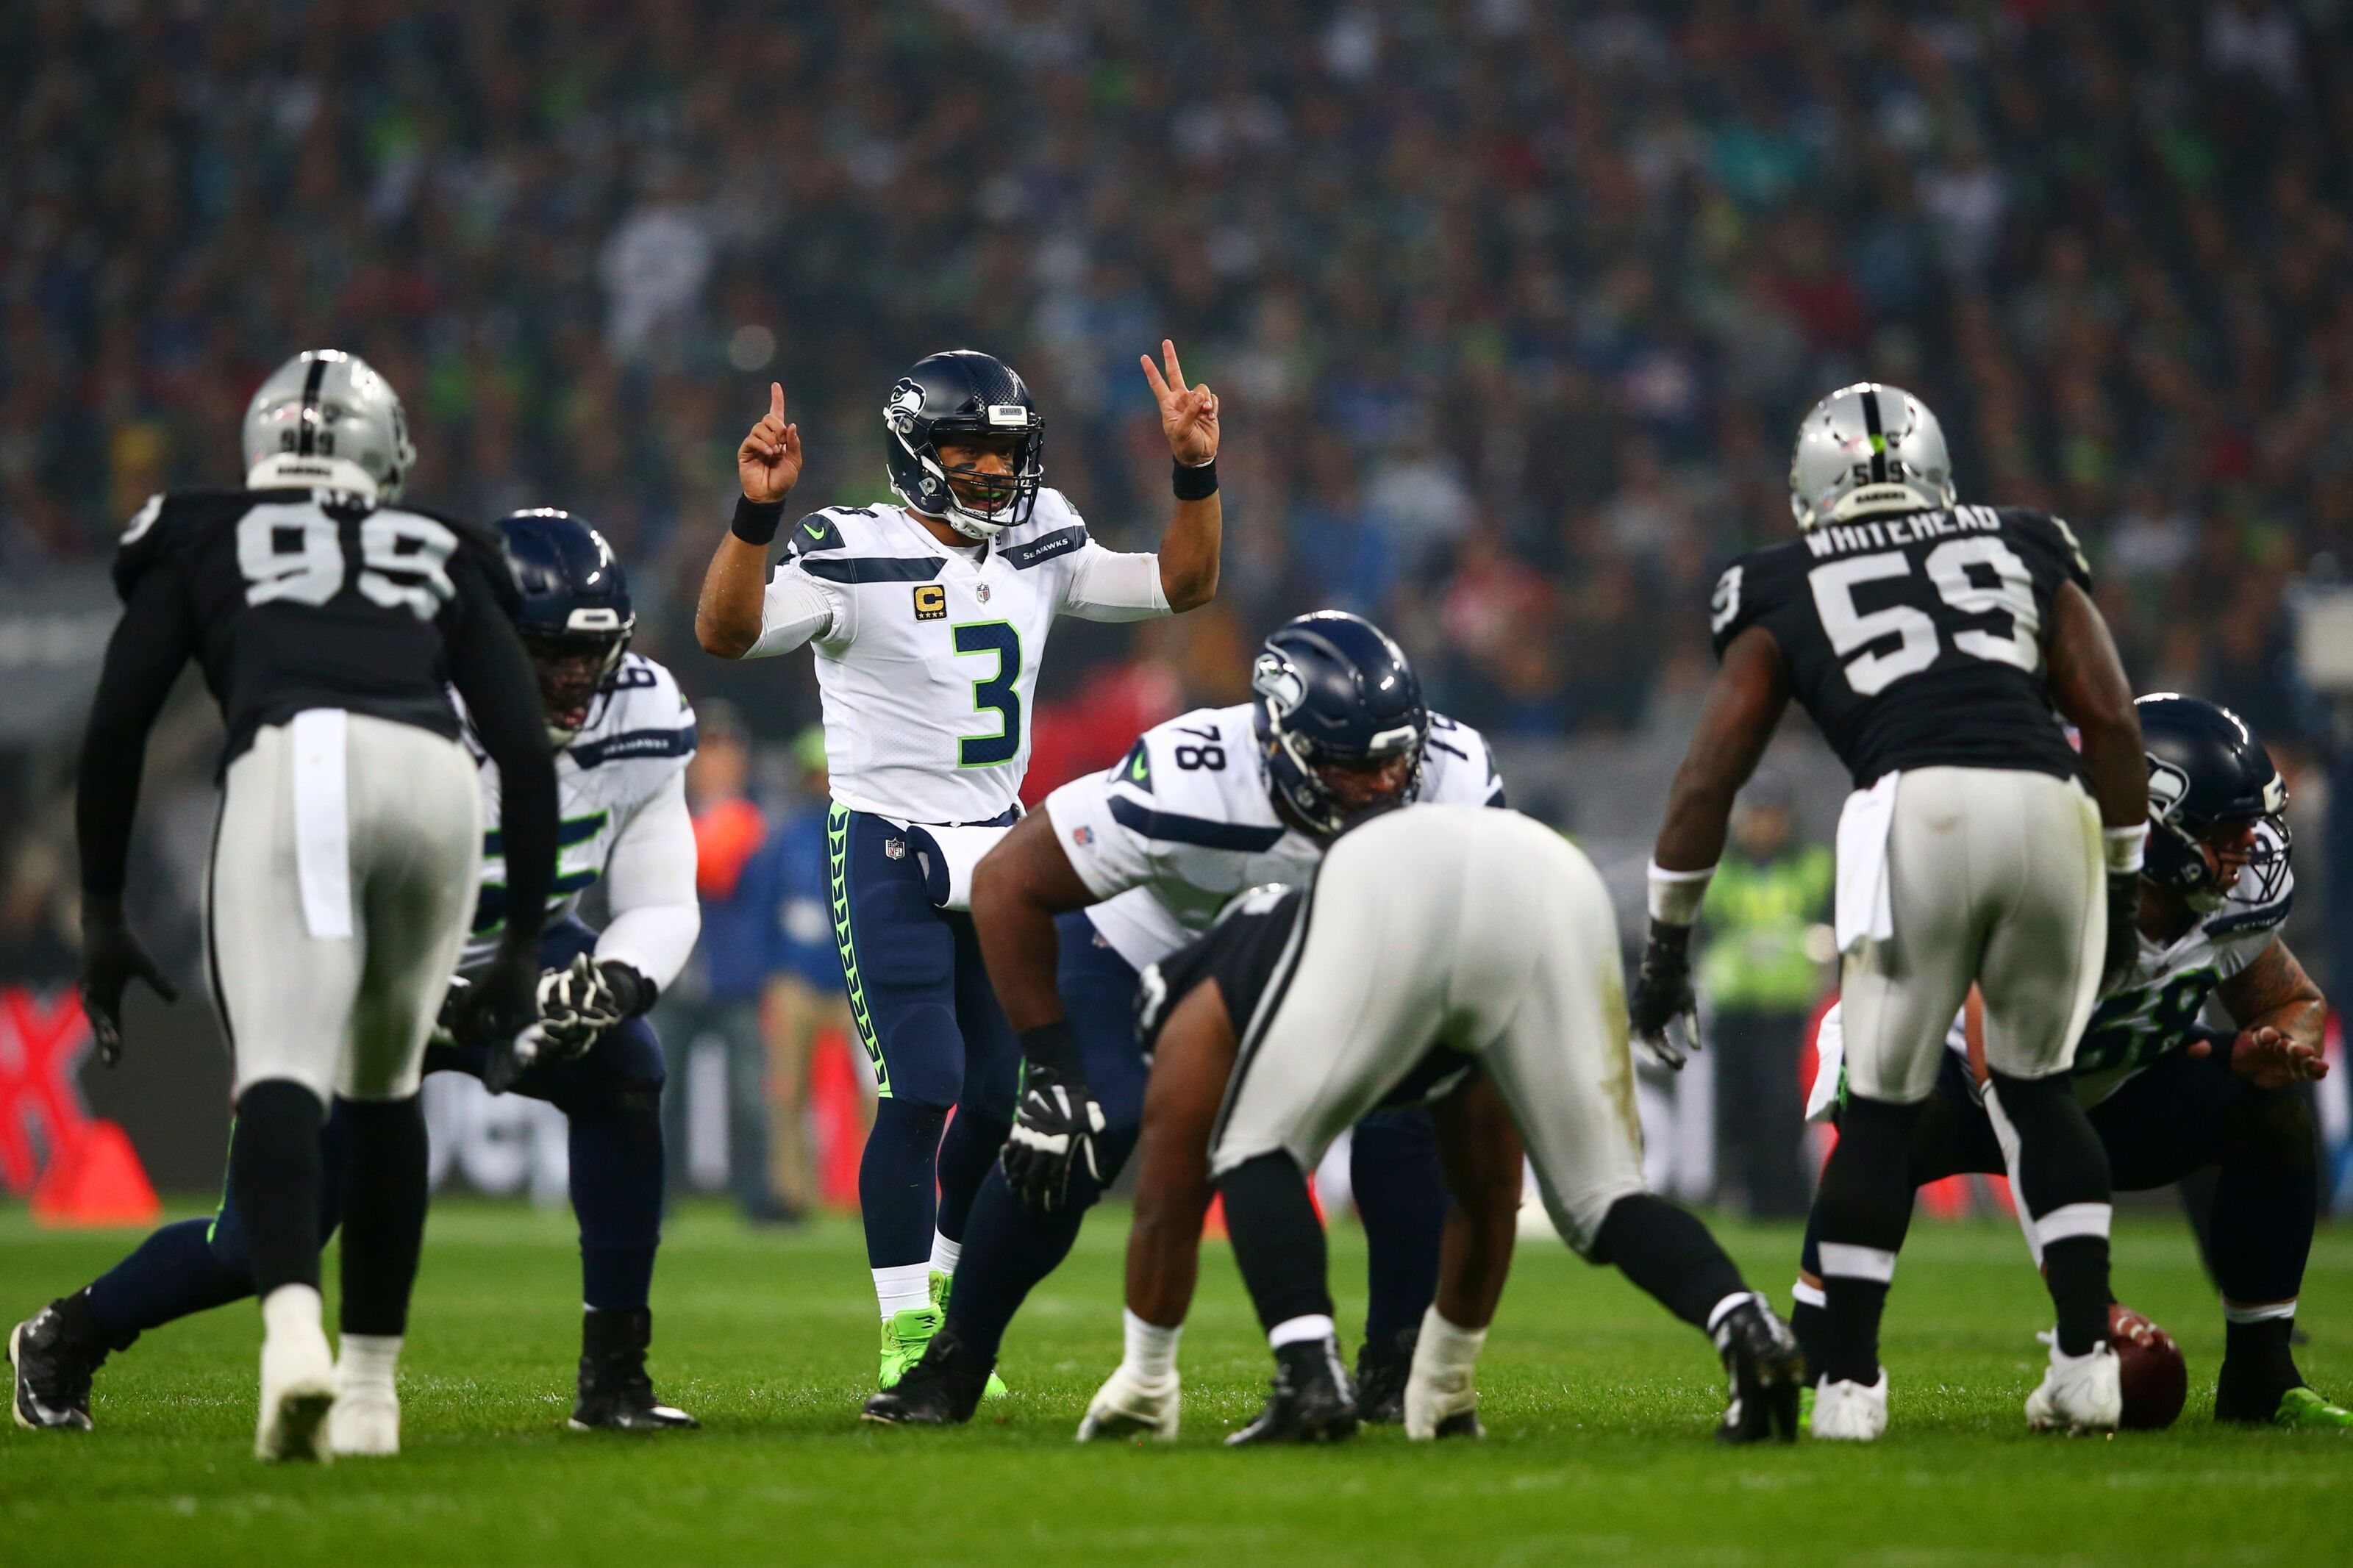 Seahawks vs. Raiders: How to watch Seattle's last preseason game of 2019